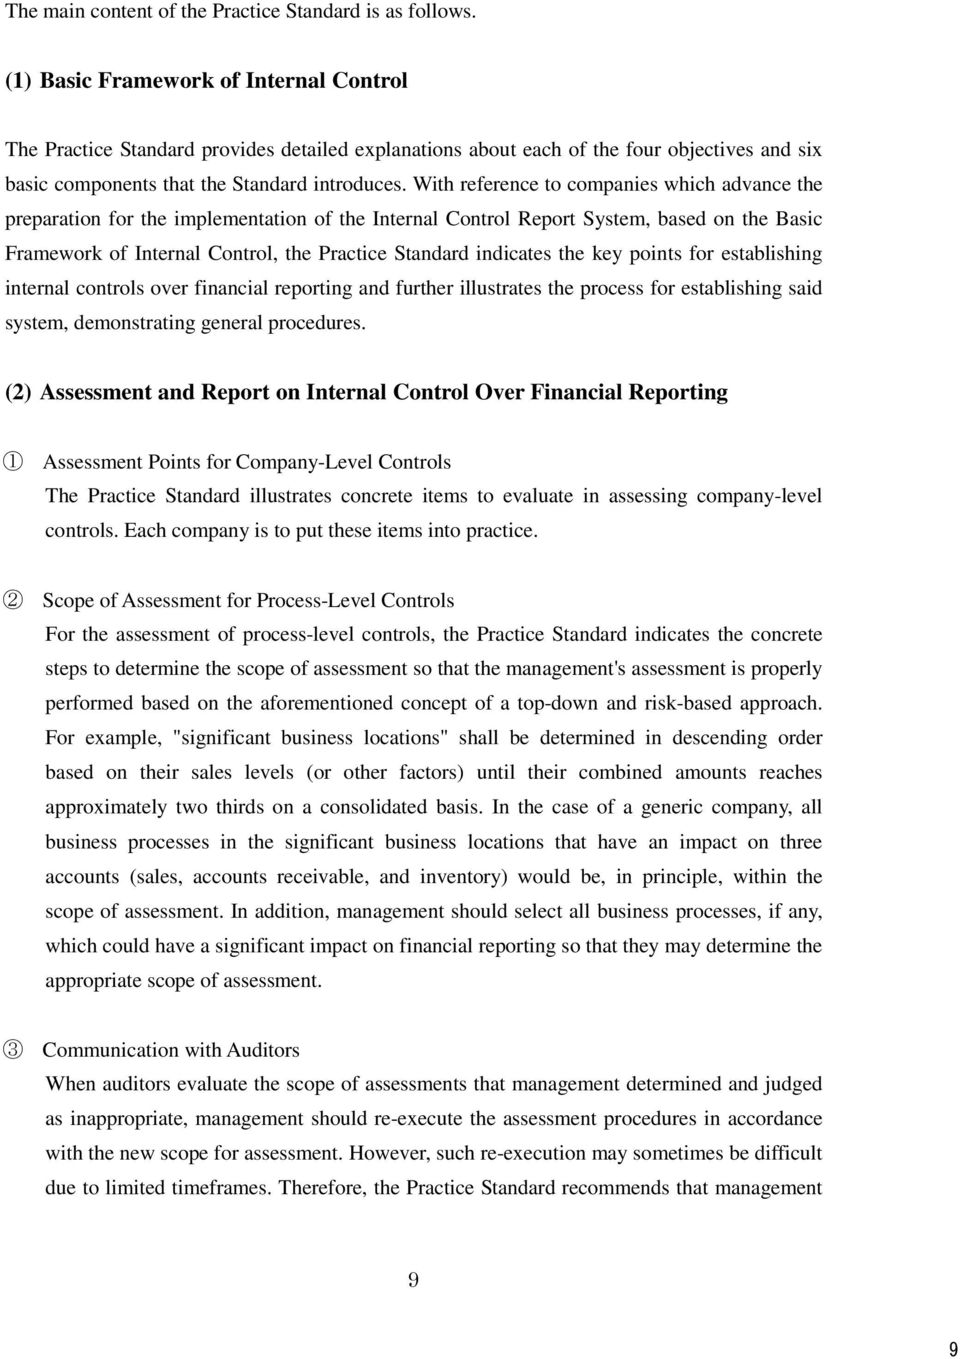 With reference to companies which advance the preparation for the implementation of the Internal Control Report System, based on the Basic Framework of Internal Control, the Practice Standard